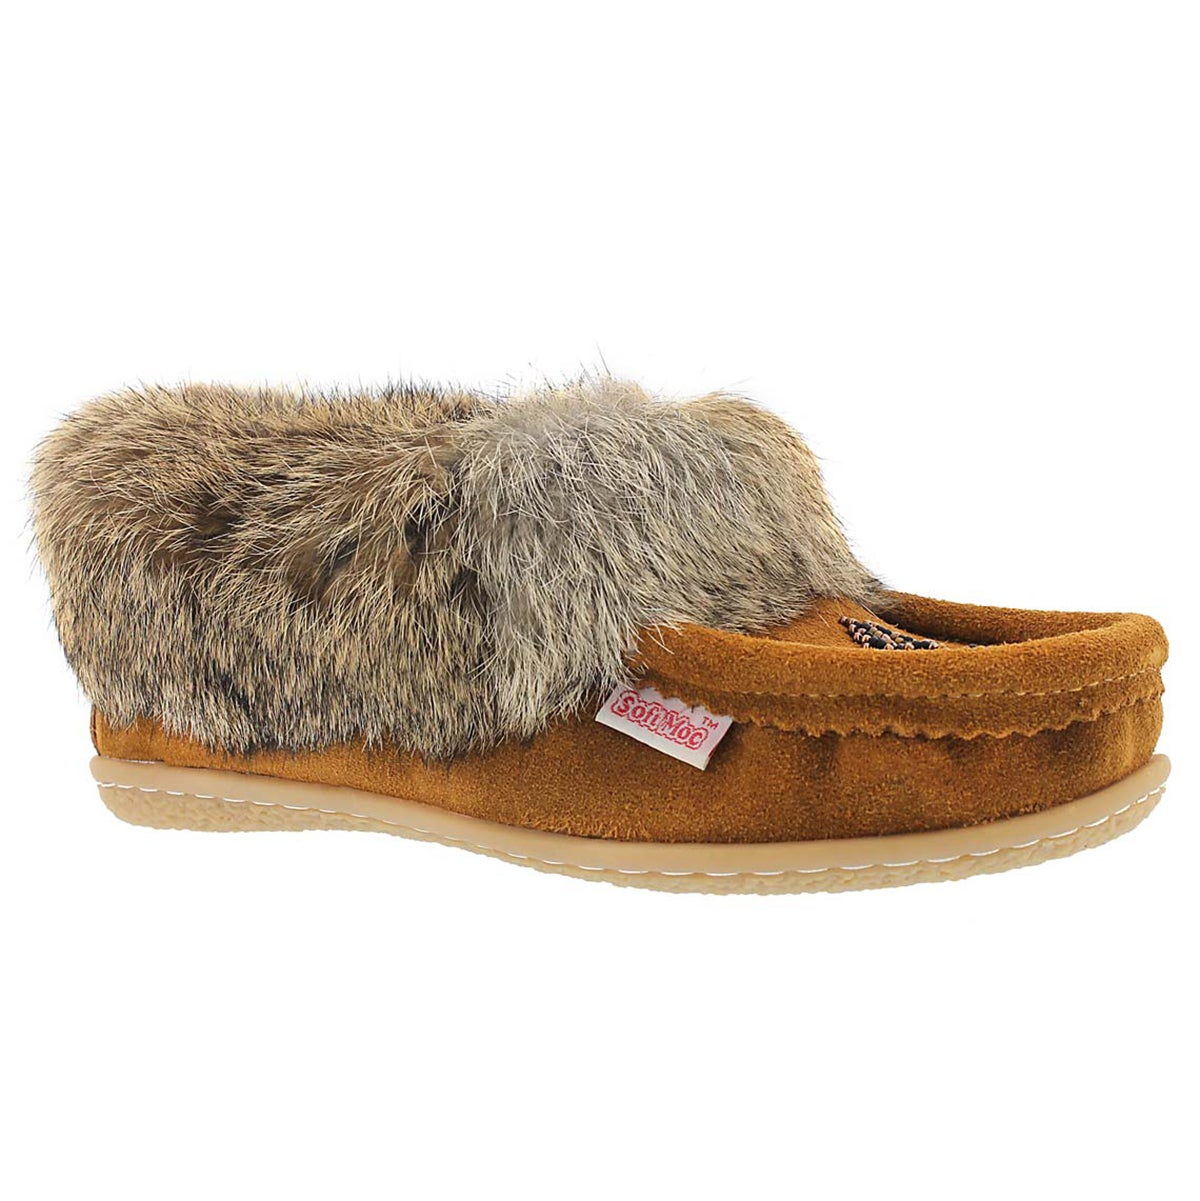 Women's CUTE 4 mocha rabbit fur moccasins